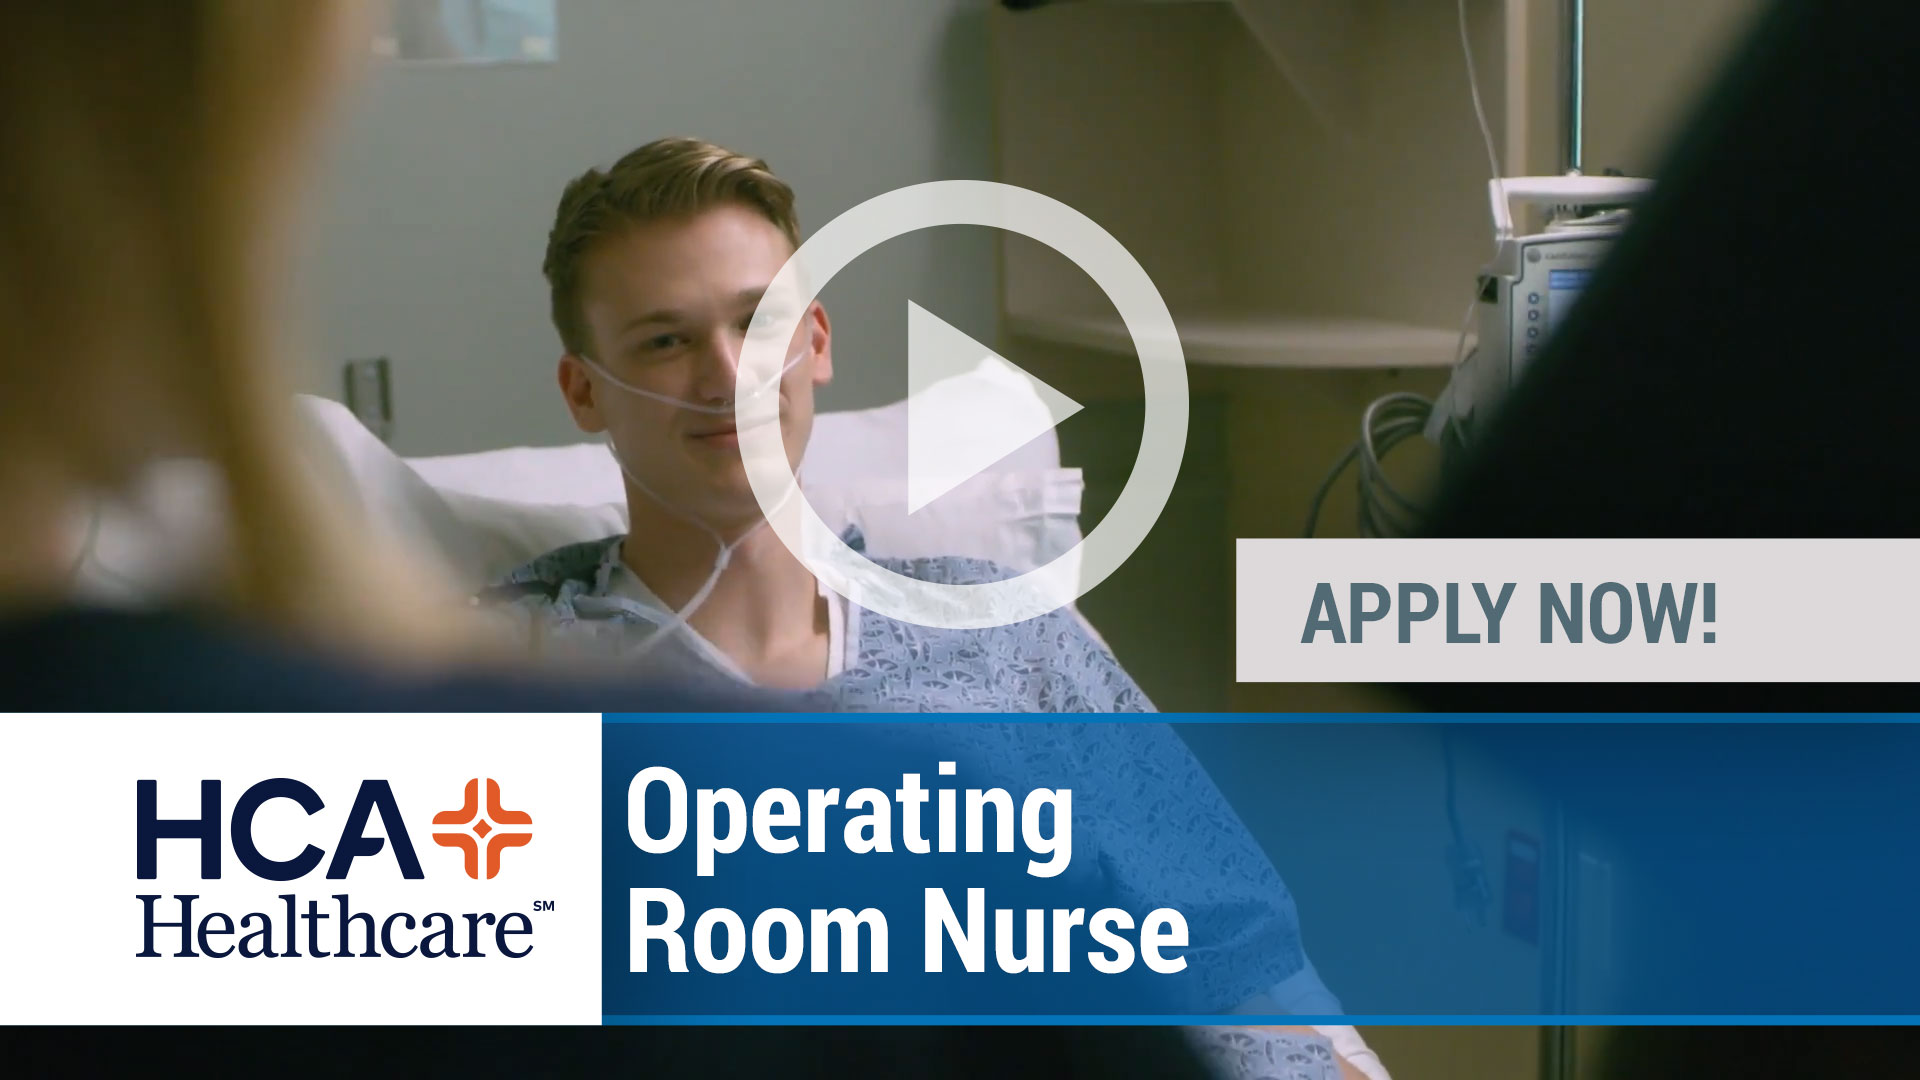 Watch our careers video for available job opening Operating Room Nurse in Tampa, Florida